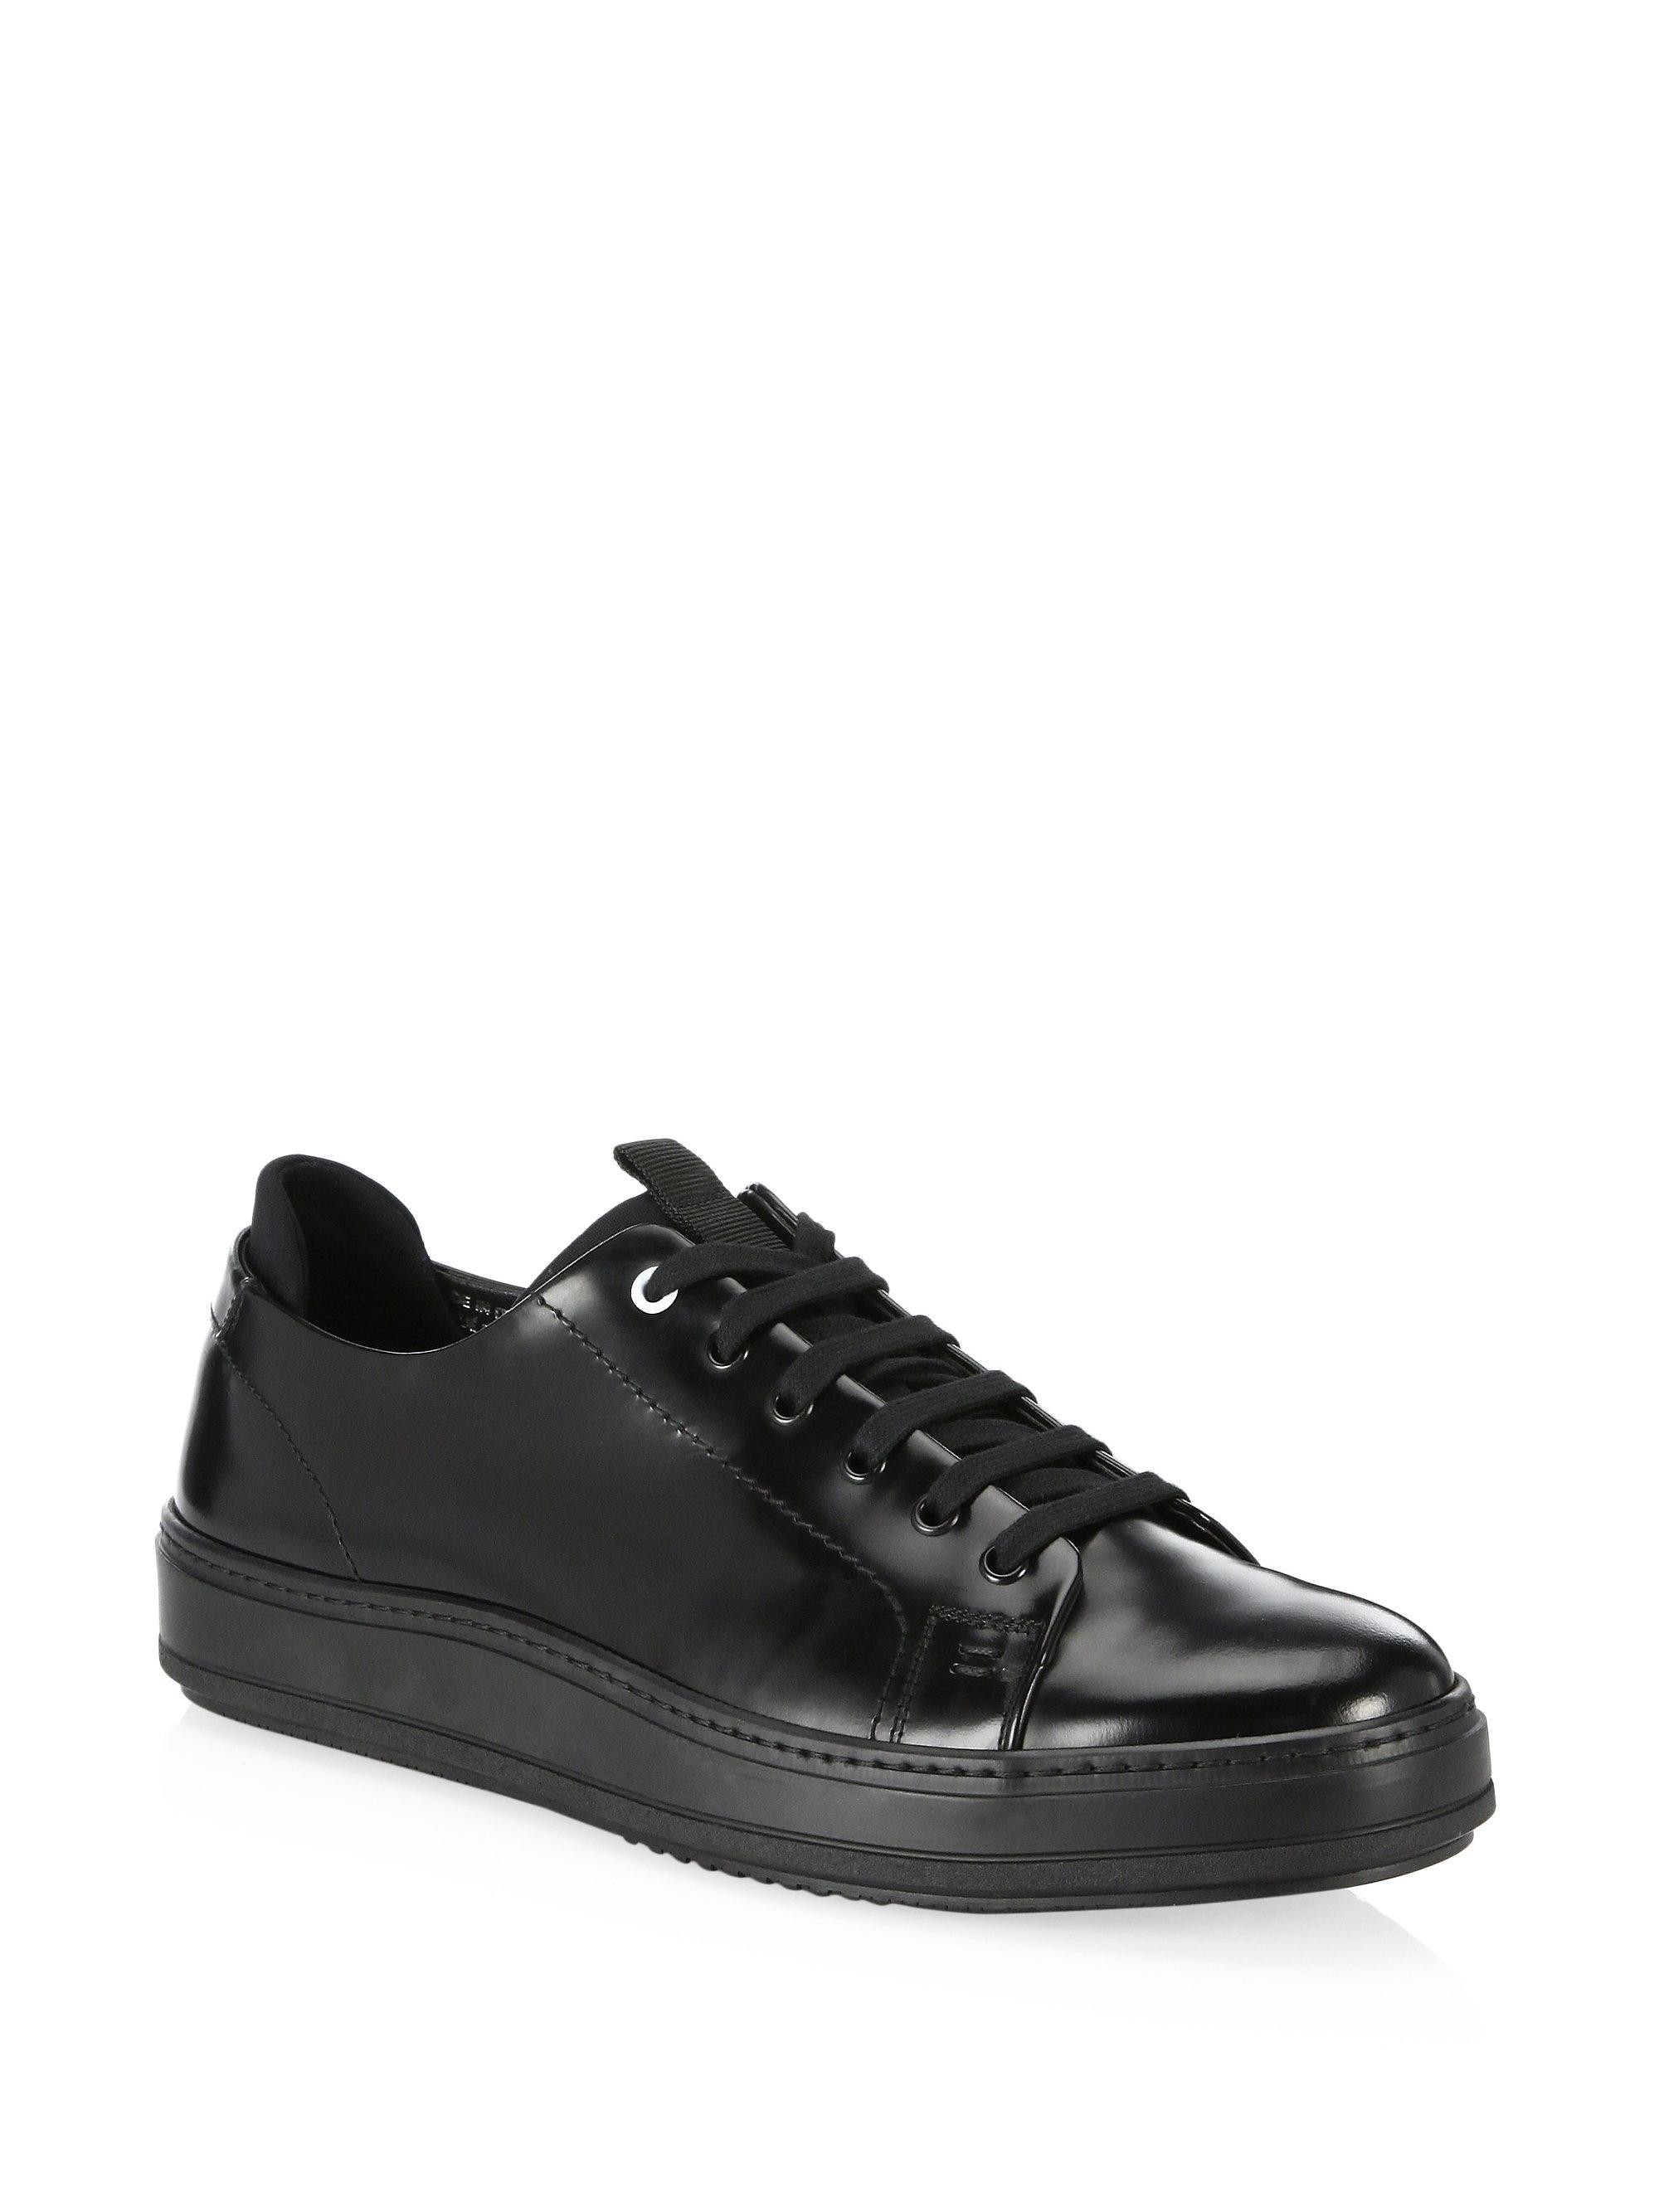 Saks Fifth Avenue COLLECTION Neoprene Inset Low-Top Sneakers GJPYrmR